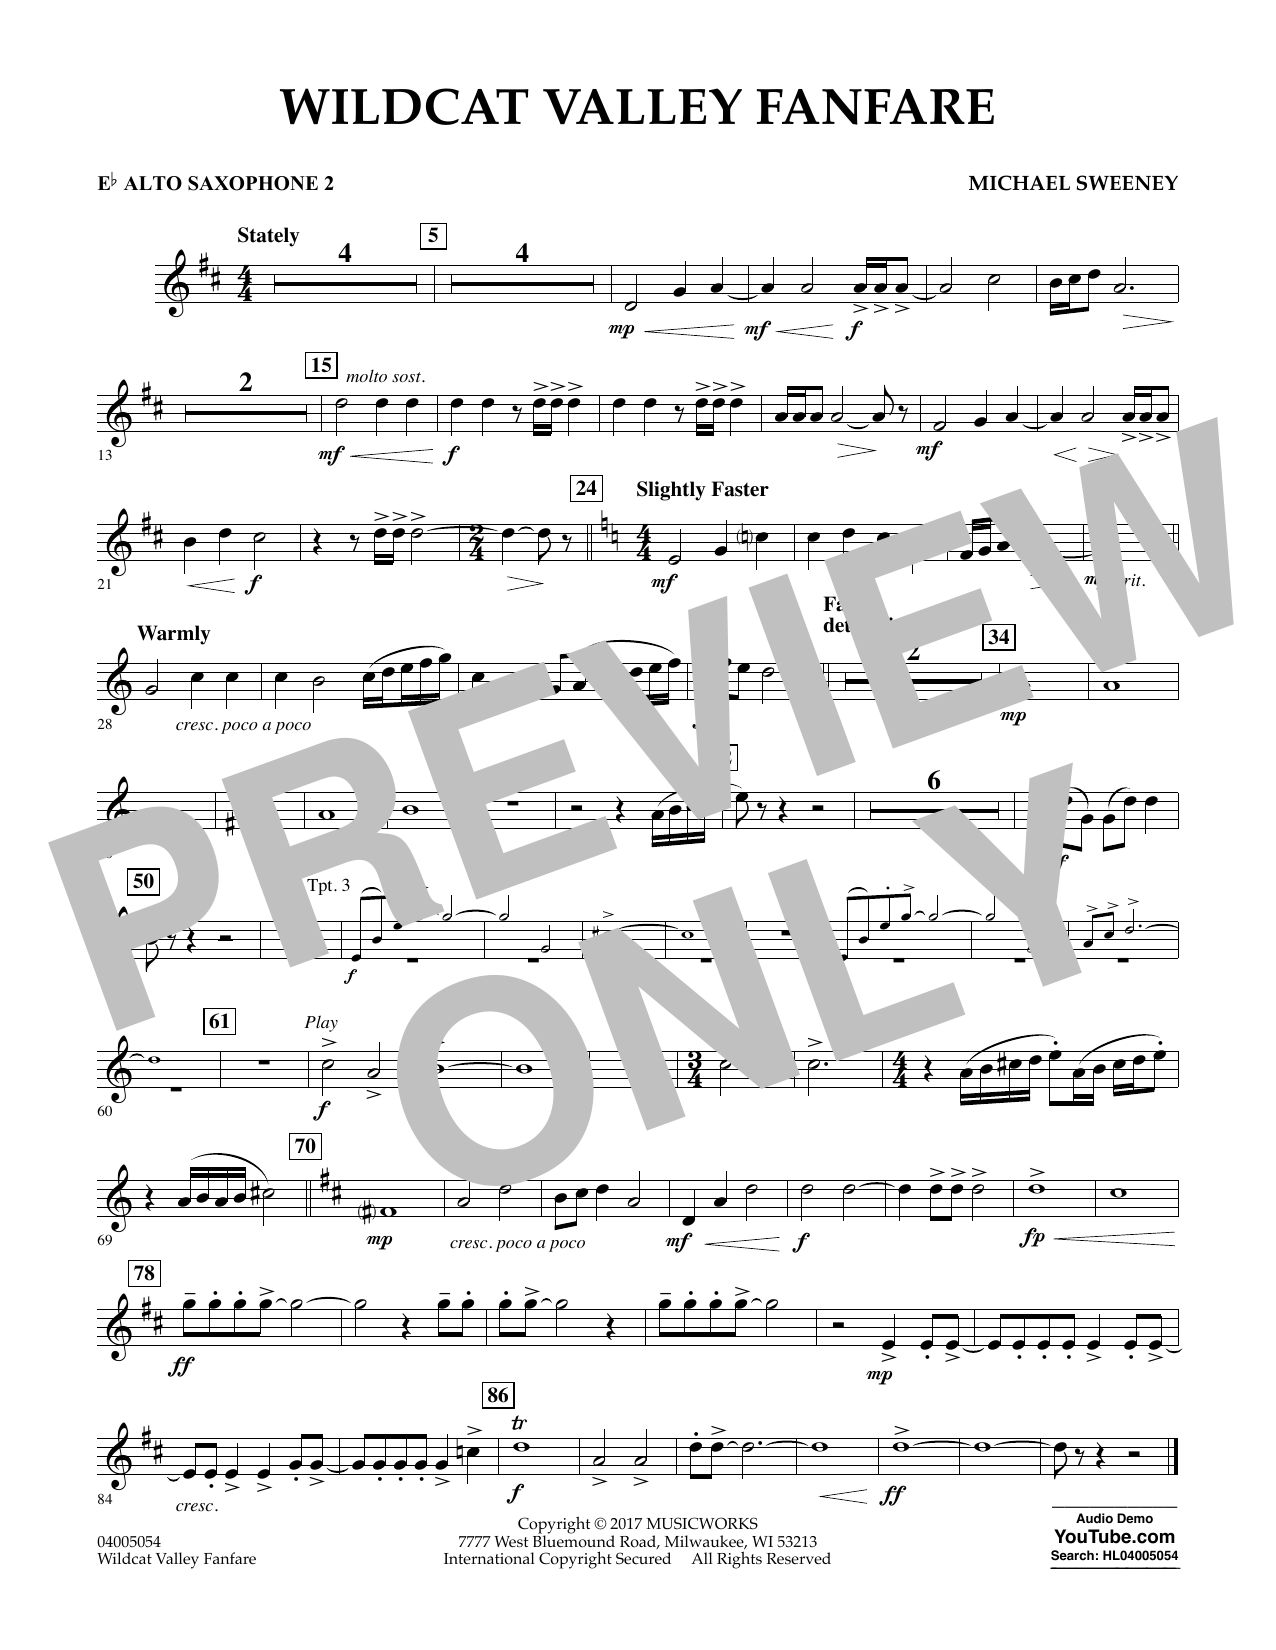 Michael Sweeney Wildcat Valley Fanfare - Eb Alto Saxophone 2 sheet music notes and chords. Download Printable PDF.